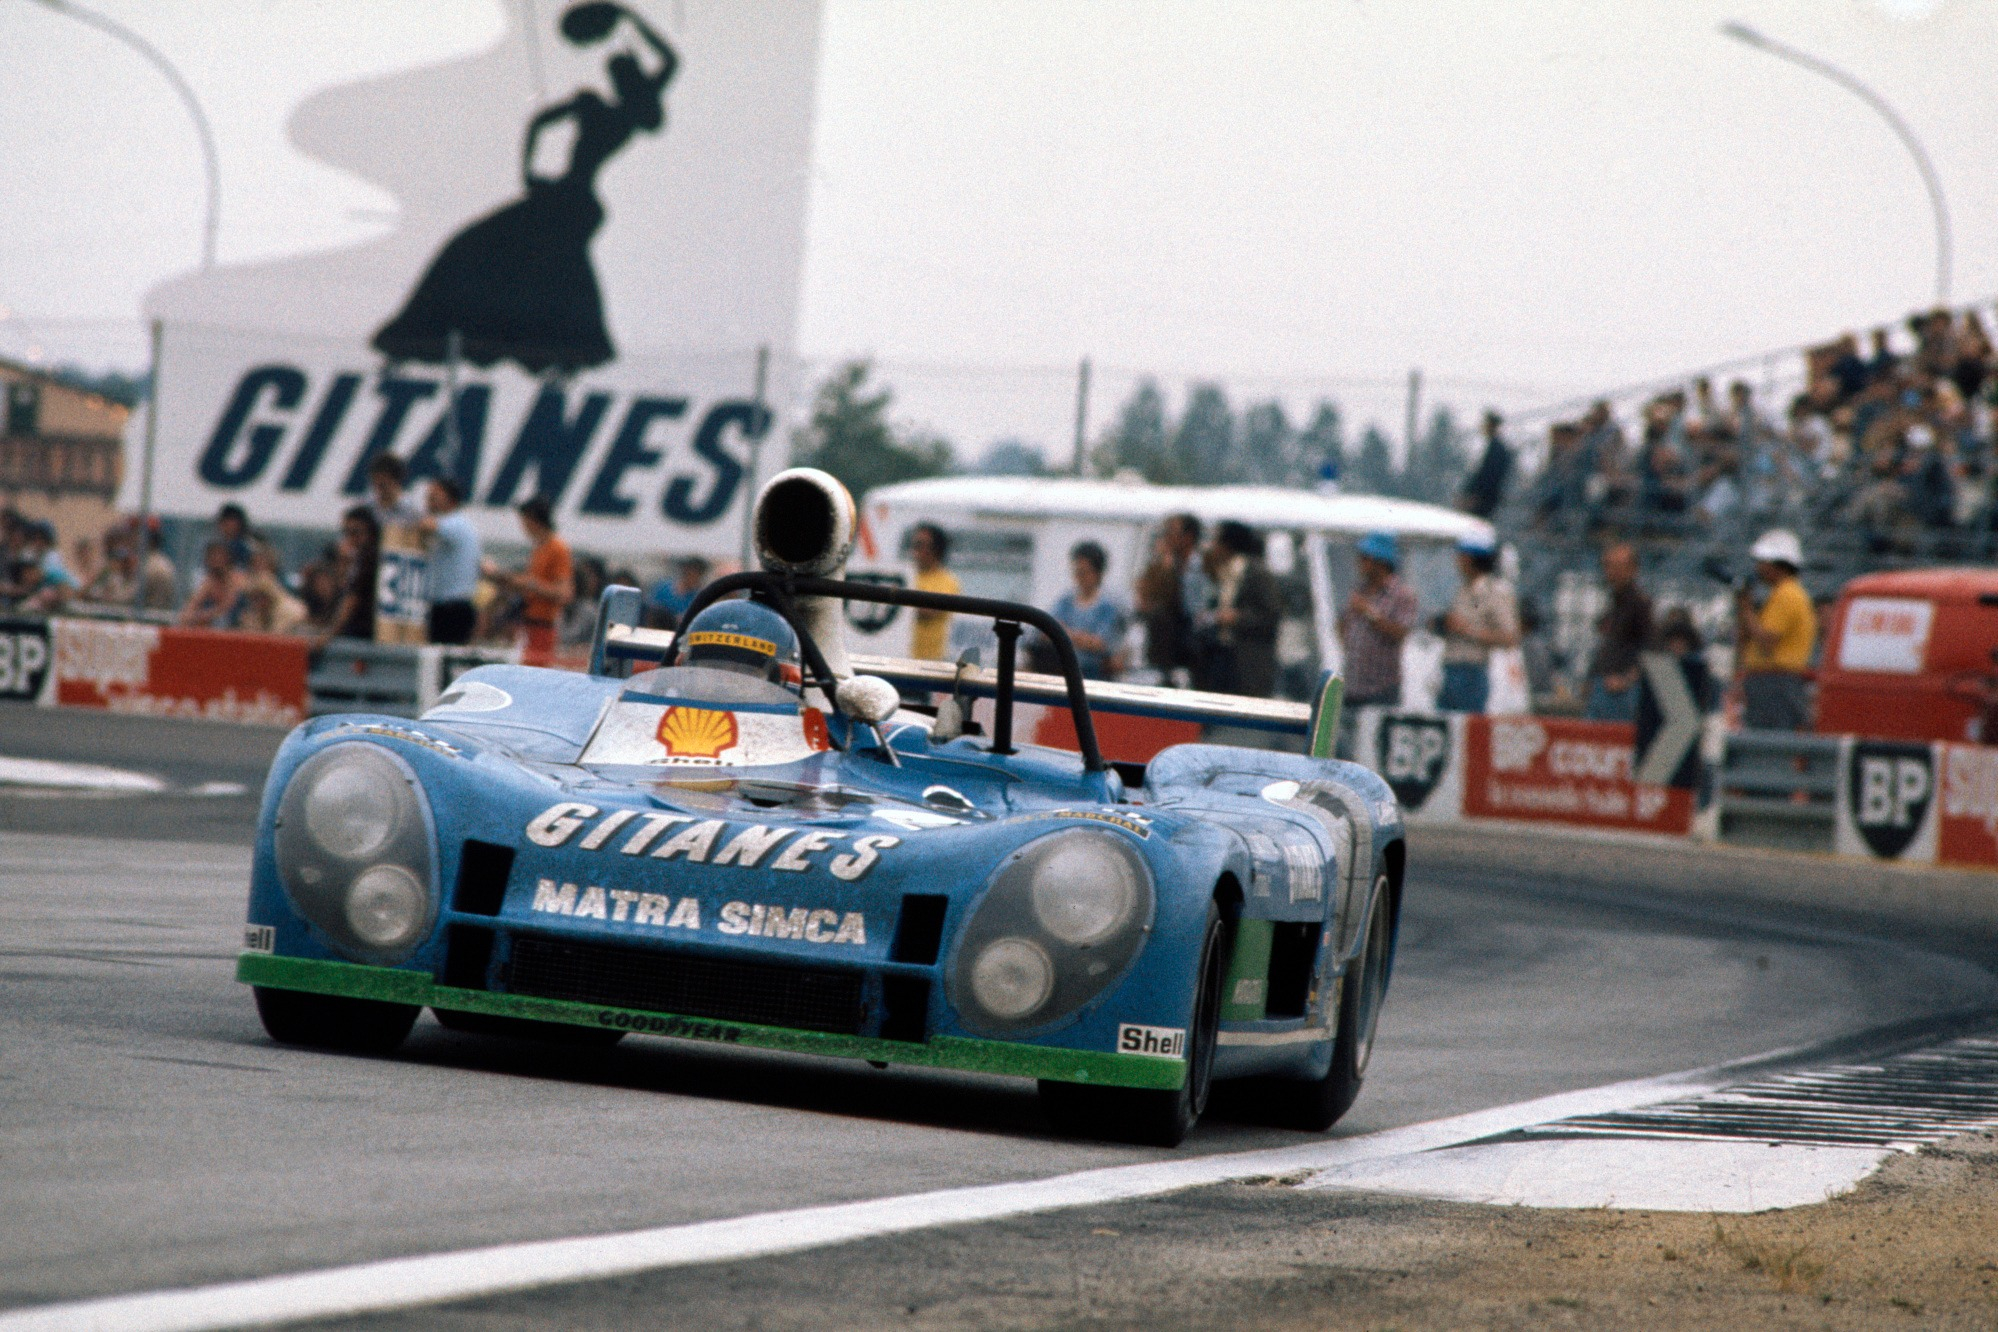 Pescarolo won Le Mans for Matra in three consecutive years, pictured here in 1974